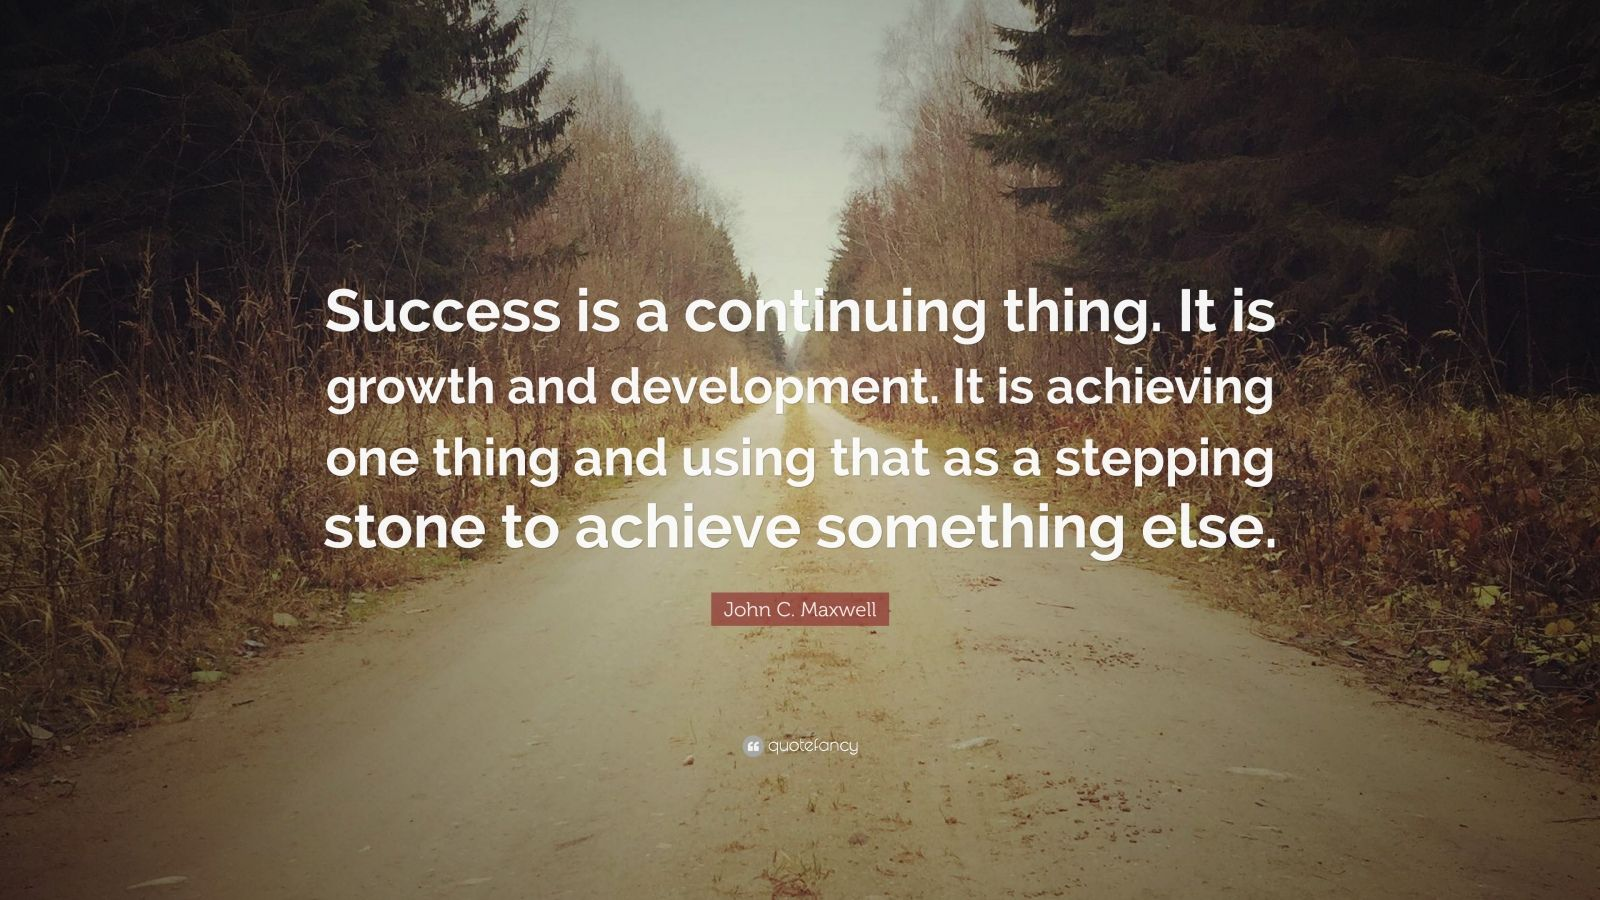 """John C. Maxwell Quote: """"Success is a continuing thing. It is growth and development. It is achieving one thing and using that as a stepping stone to achieve something else."""""""